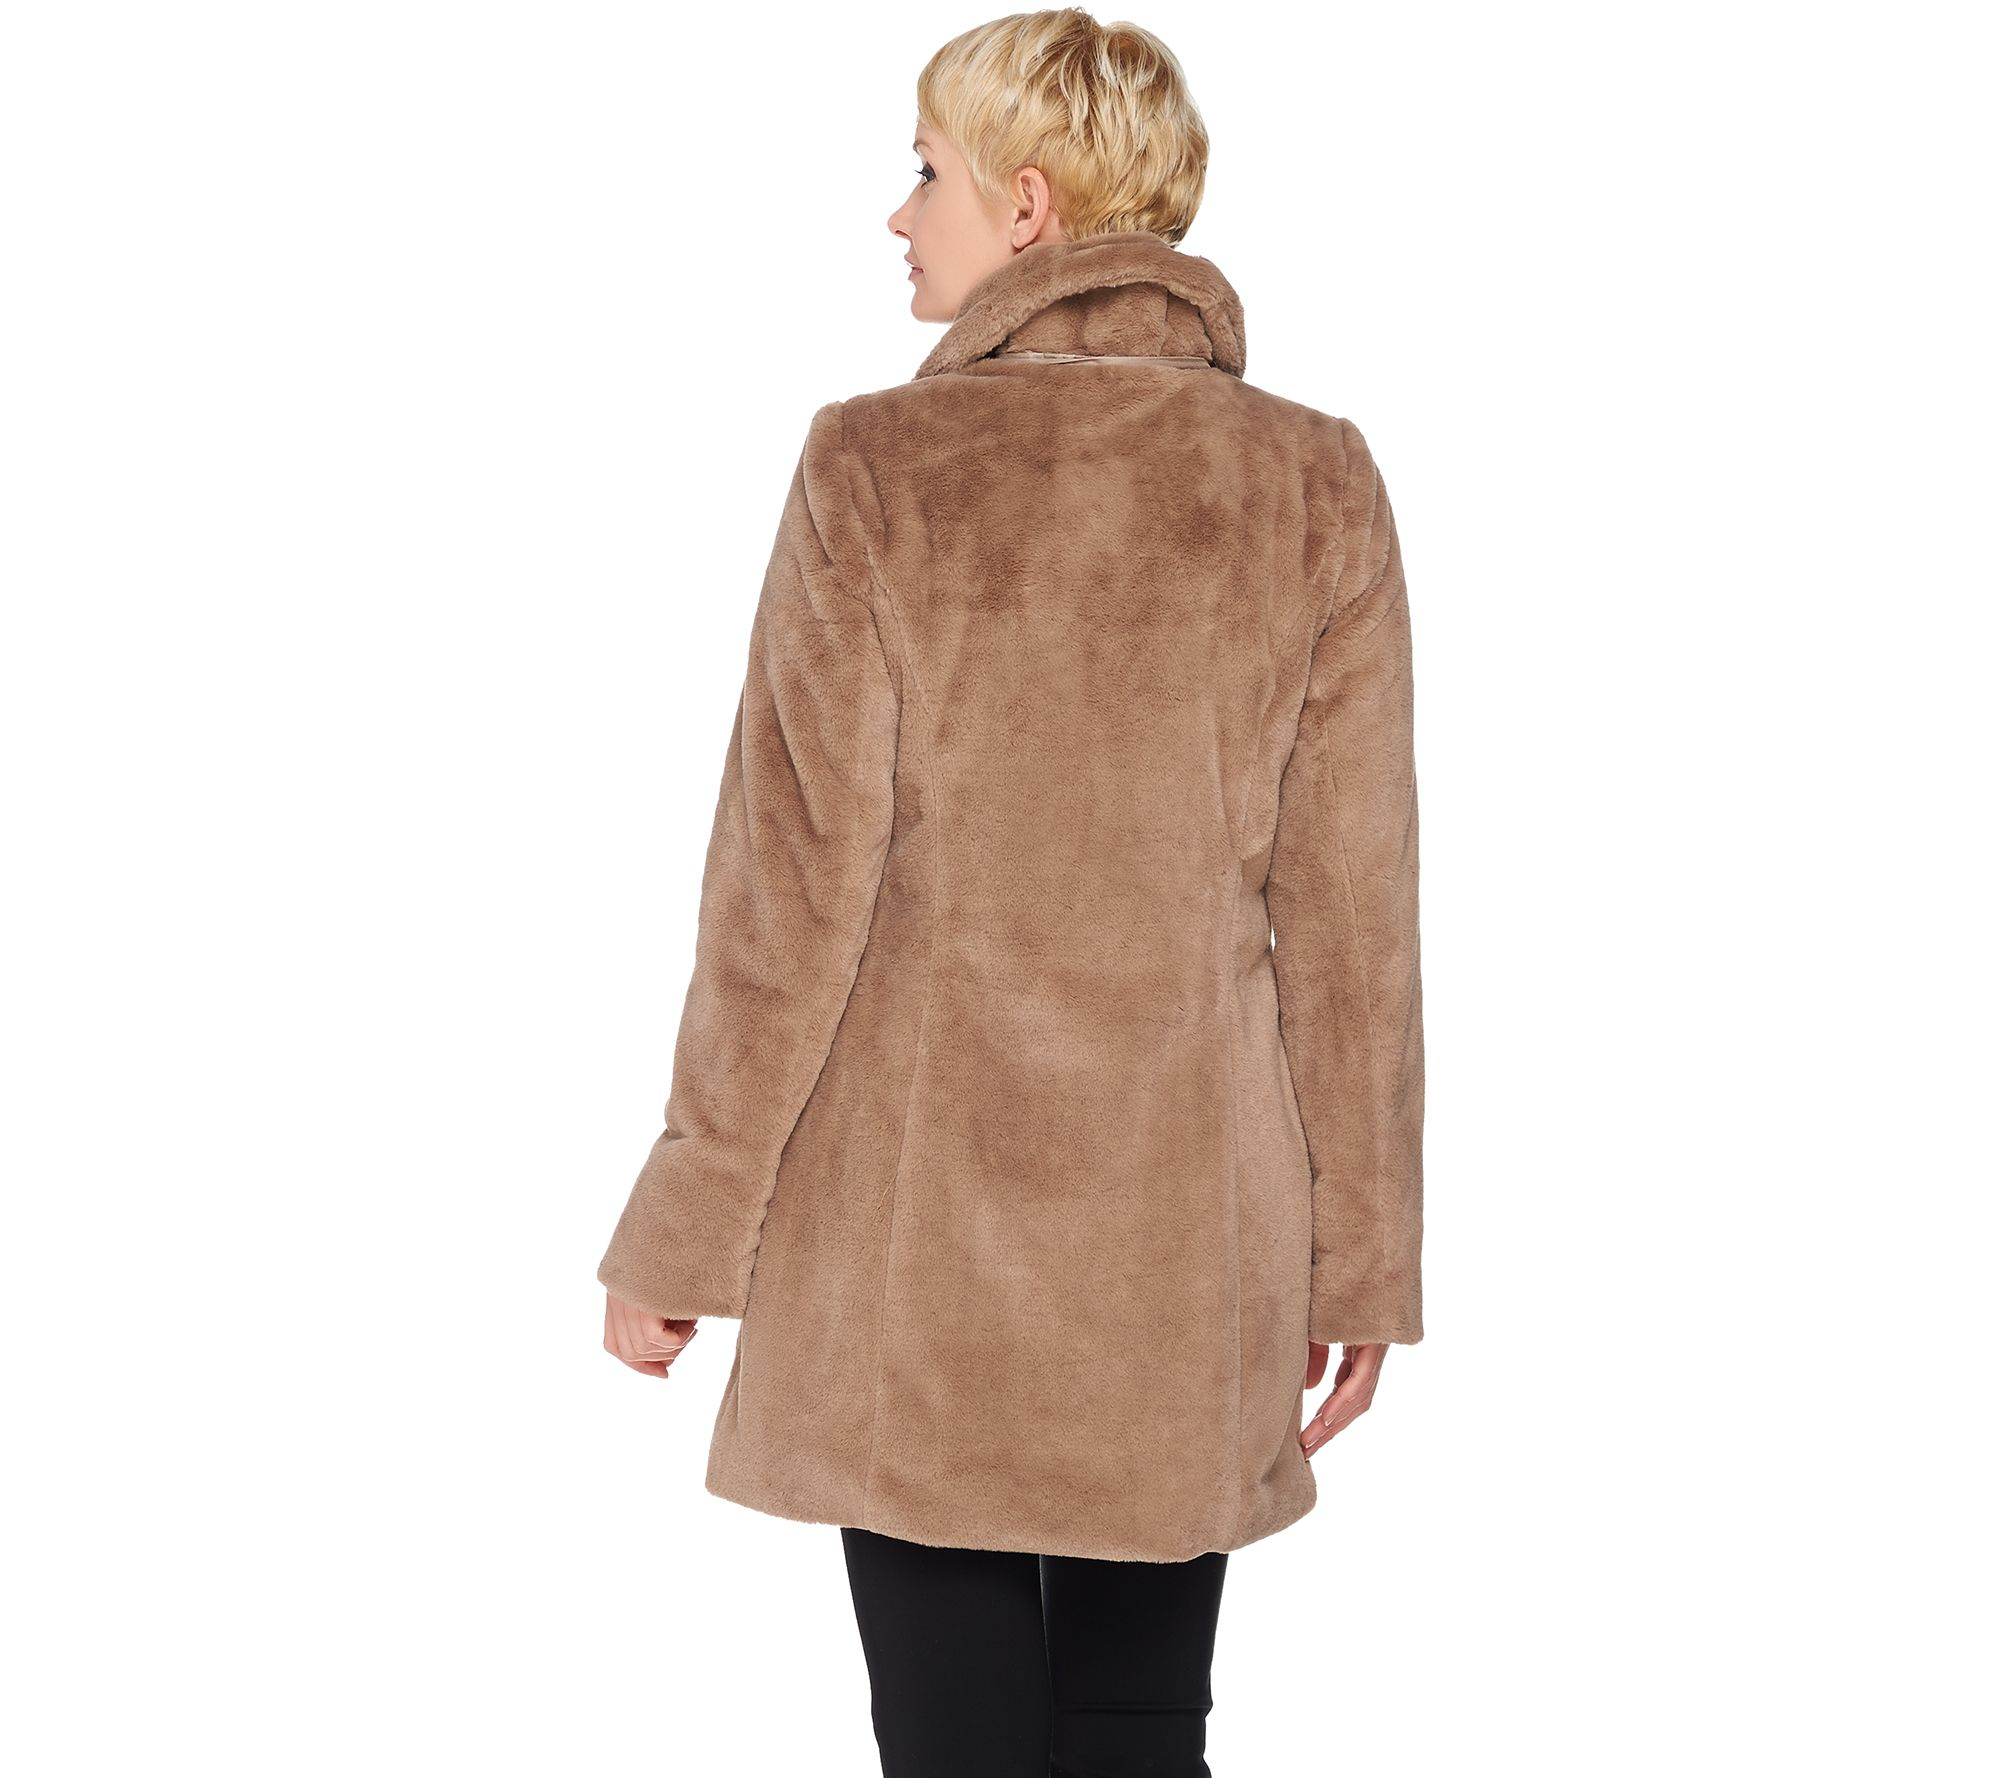 35b721ee0789 Womens Metallic Work Clog Sr check out d936e 1af49  Dennis Basso Faux Fur  Coat with Removable Hood and Collar - Page 1 — QVC.